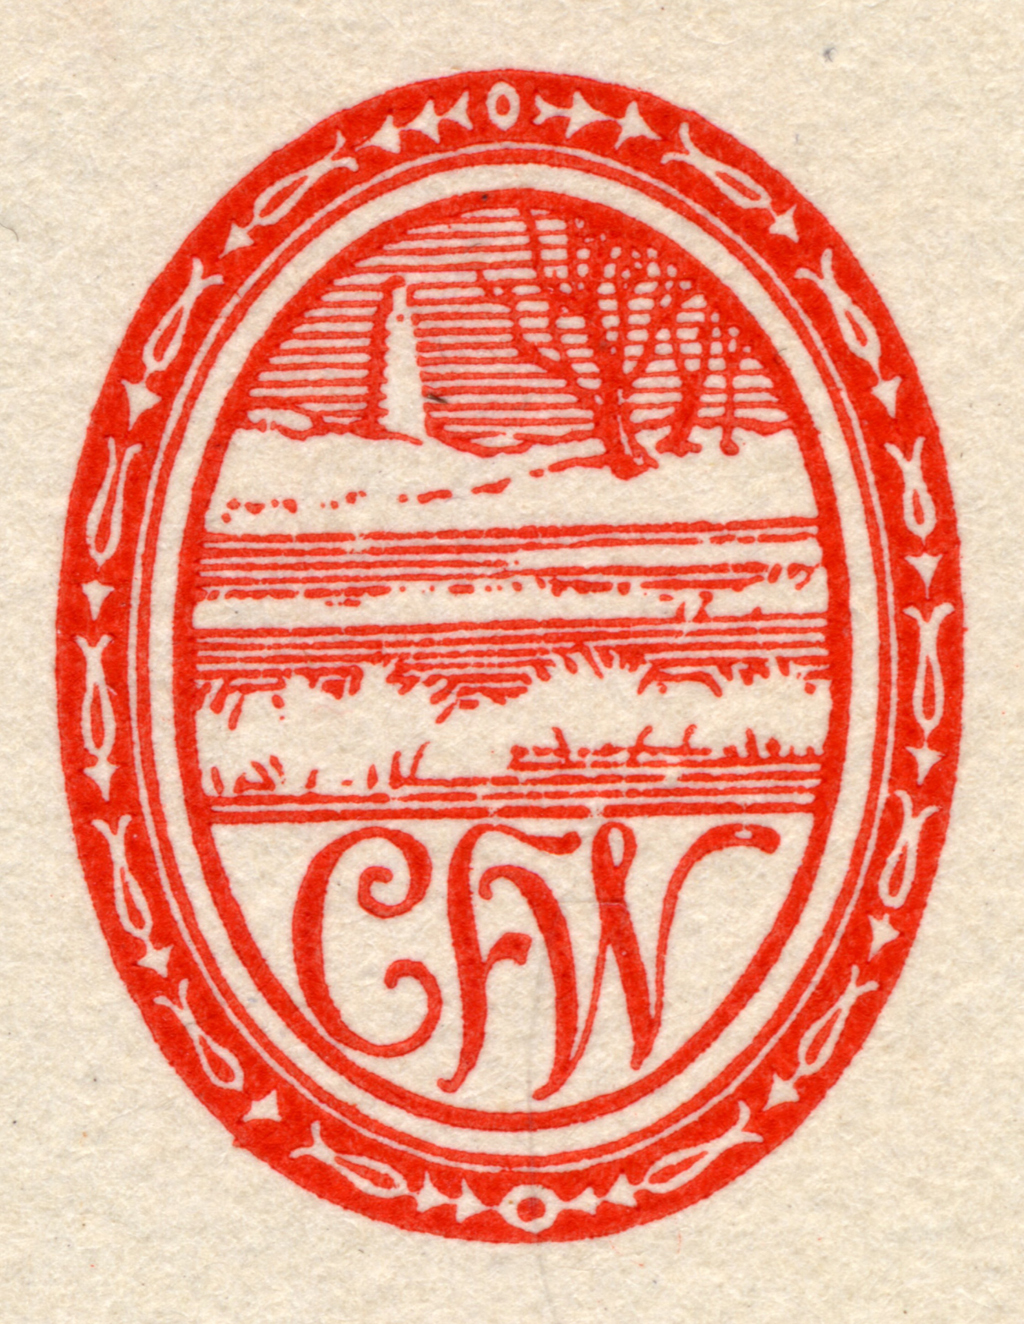 Personal mark. From 22 Printers' Marks and Seals